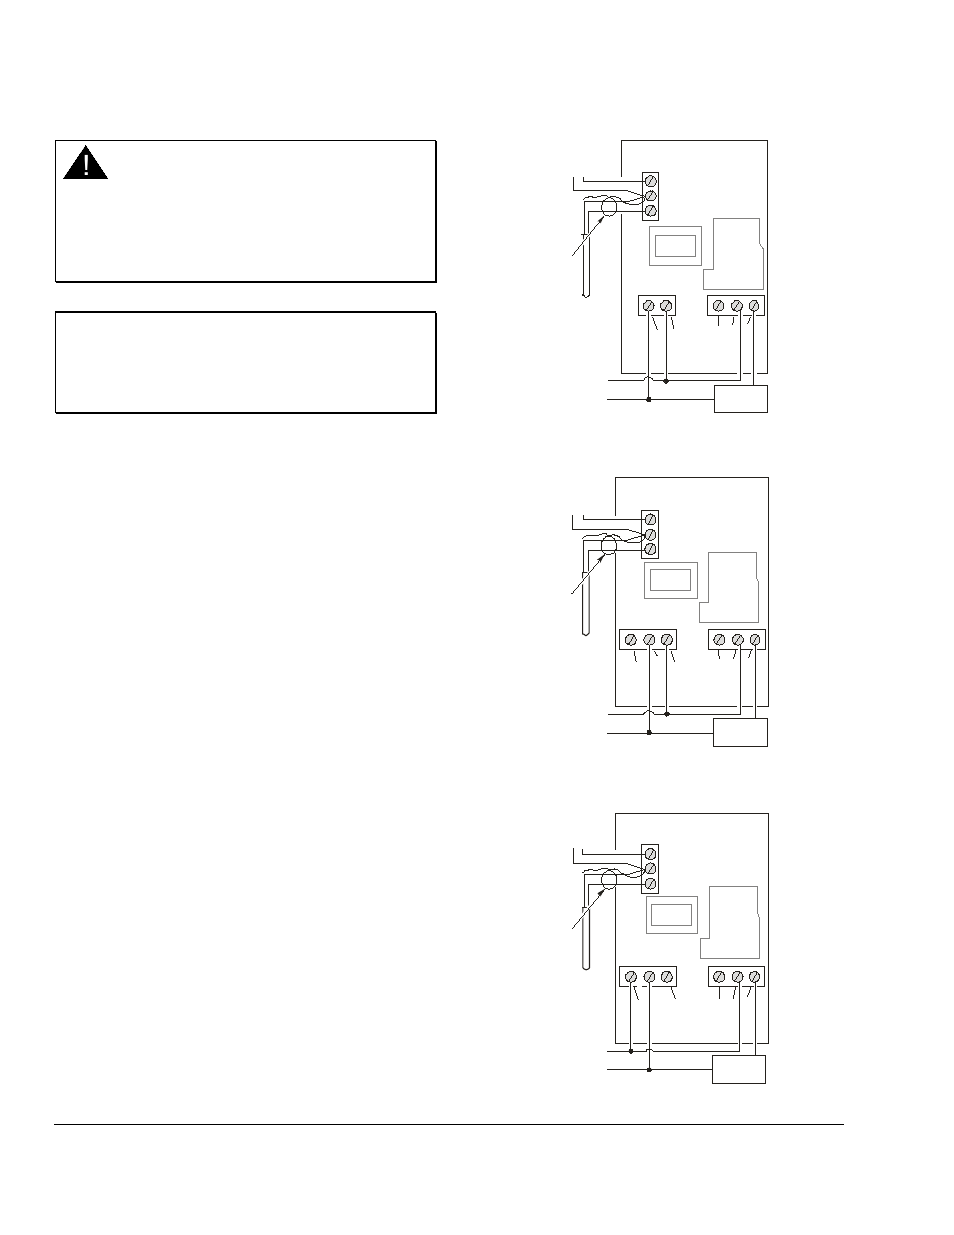 johnson controls wiring diagram electrical wiring diagram guide Johnson Temp Controller johnson controls wiring diagram electrical wiring diagram guide johnson controls vma1630 wiring diagram johnson controls wiring diagram